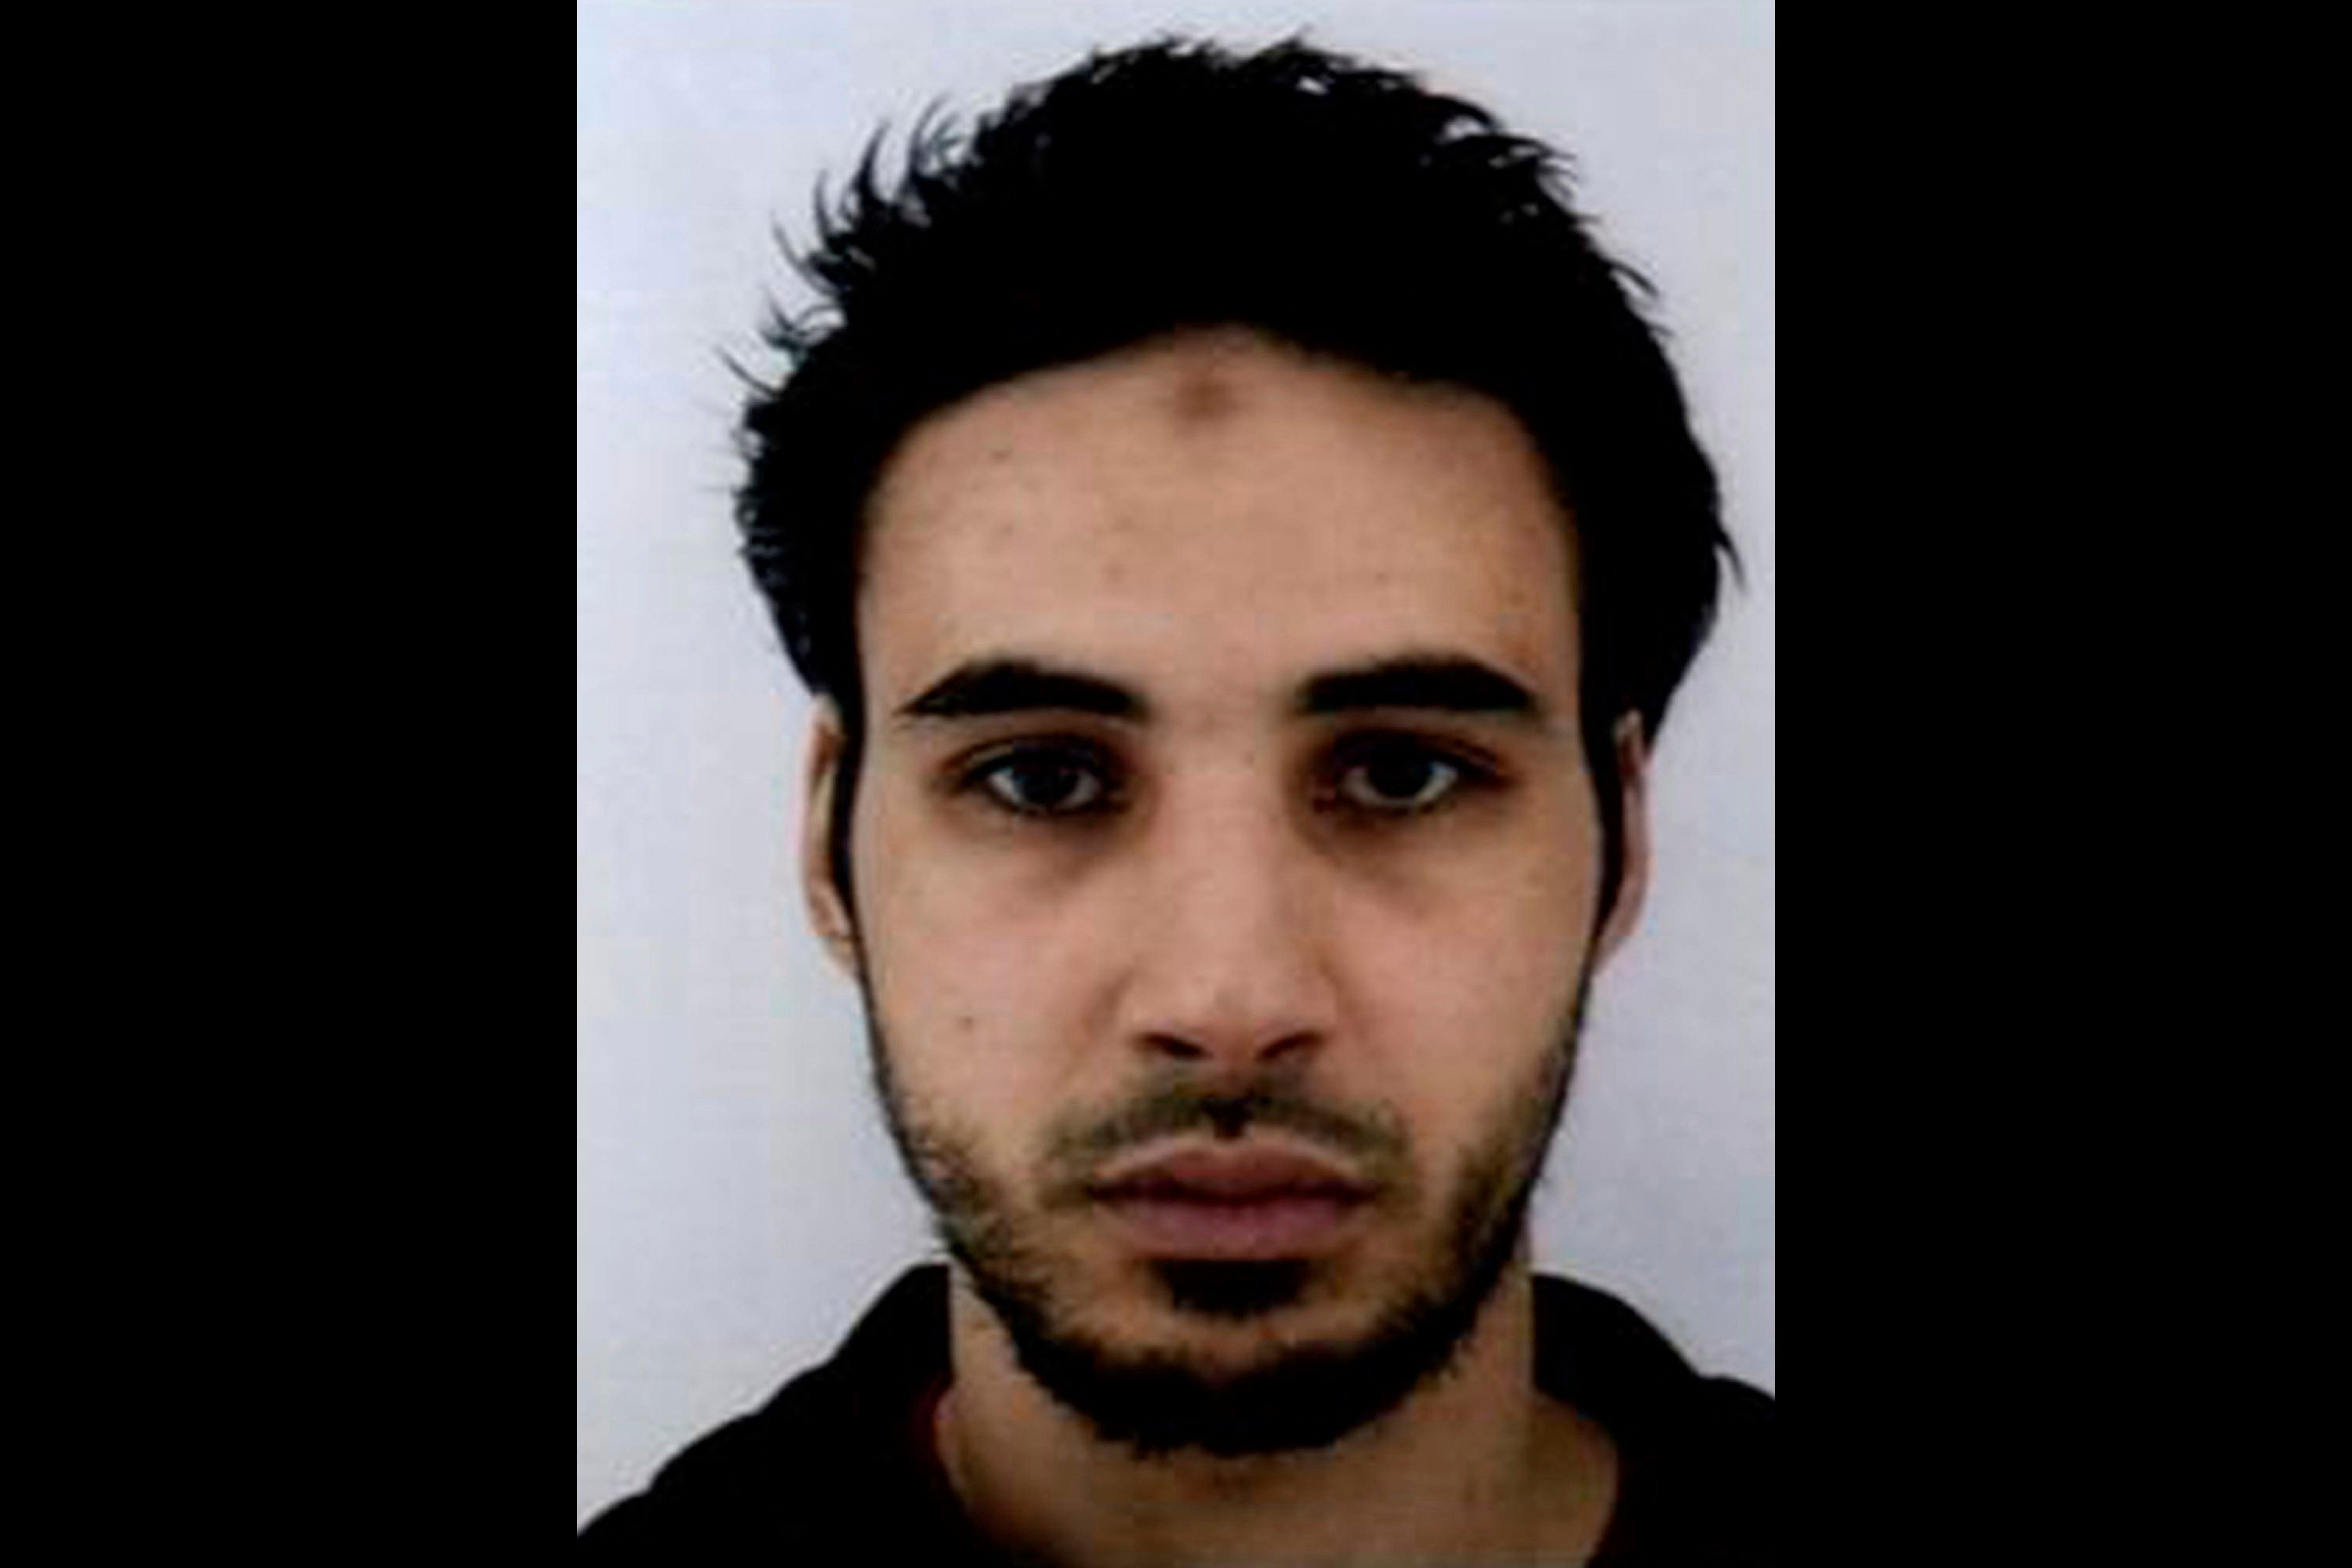 Strasbourg Shooting Suspect Cherif Chekatt Is Shot